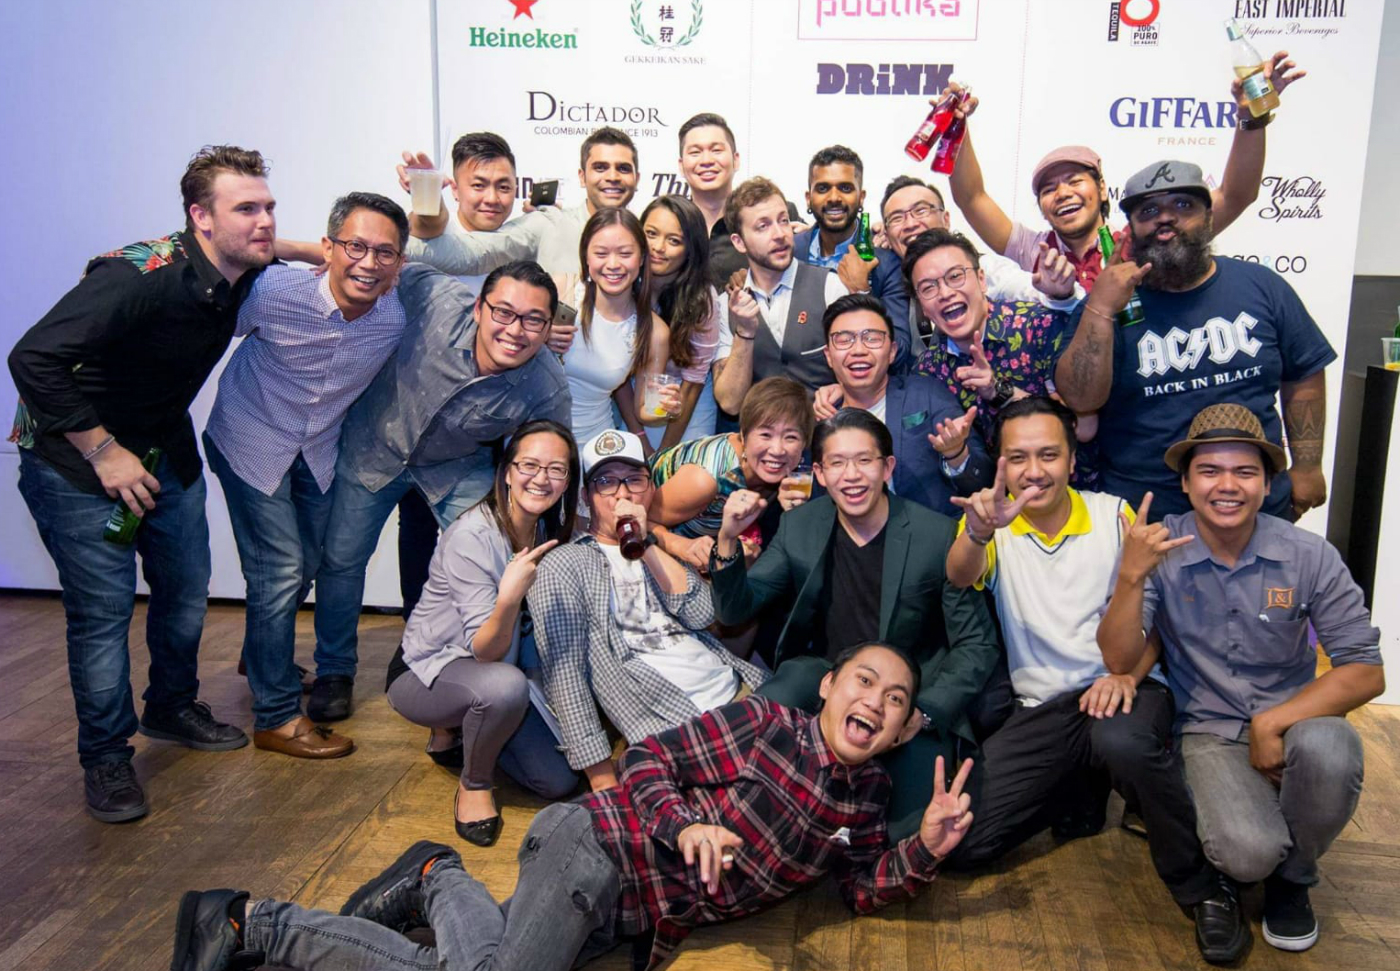 The Top 4s For The Bar Awards Kuala Lumpur And Penang 2018 Announced photo